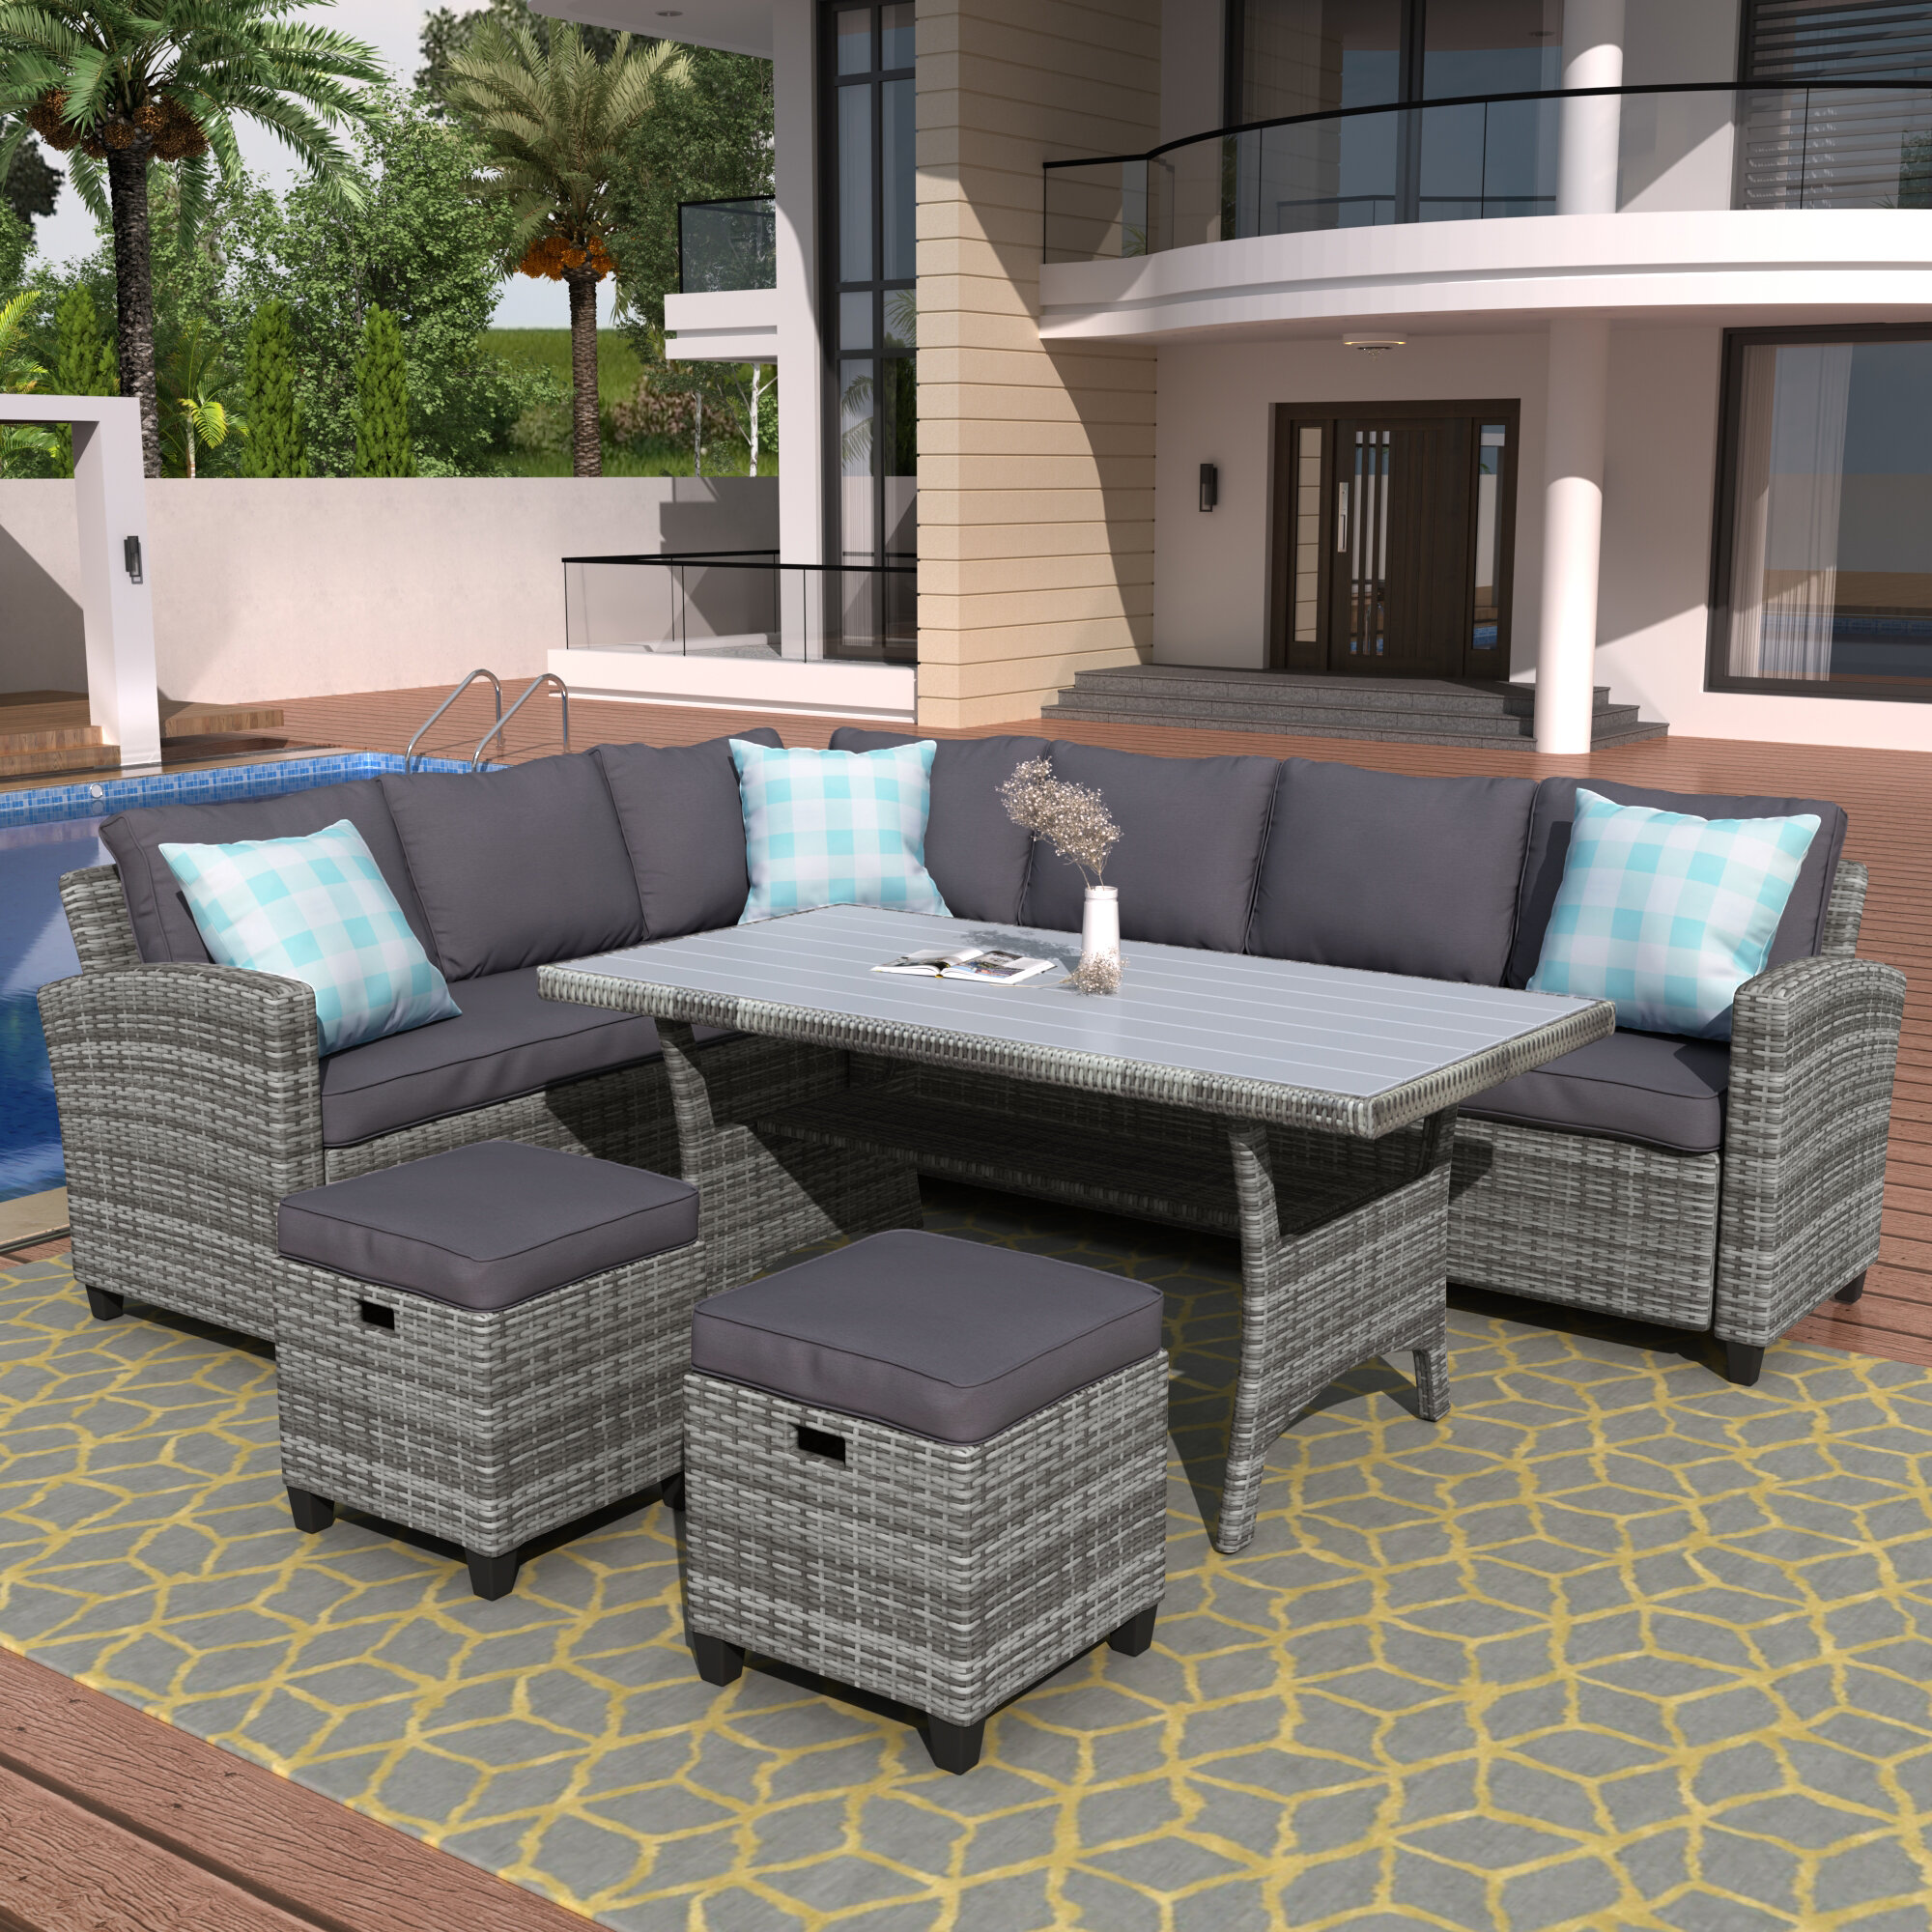 Red Barrel Studio Kaytlyn Outdoor 5 Piece Rattan Sectional Seating Group With Cushions Wayfair